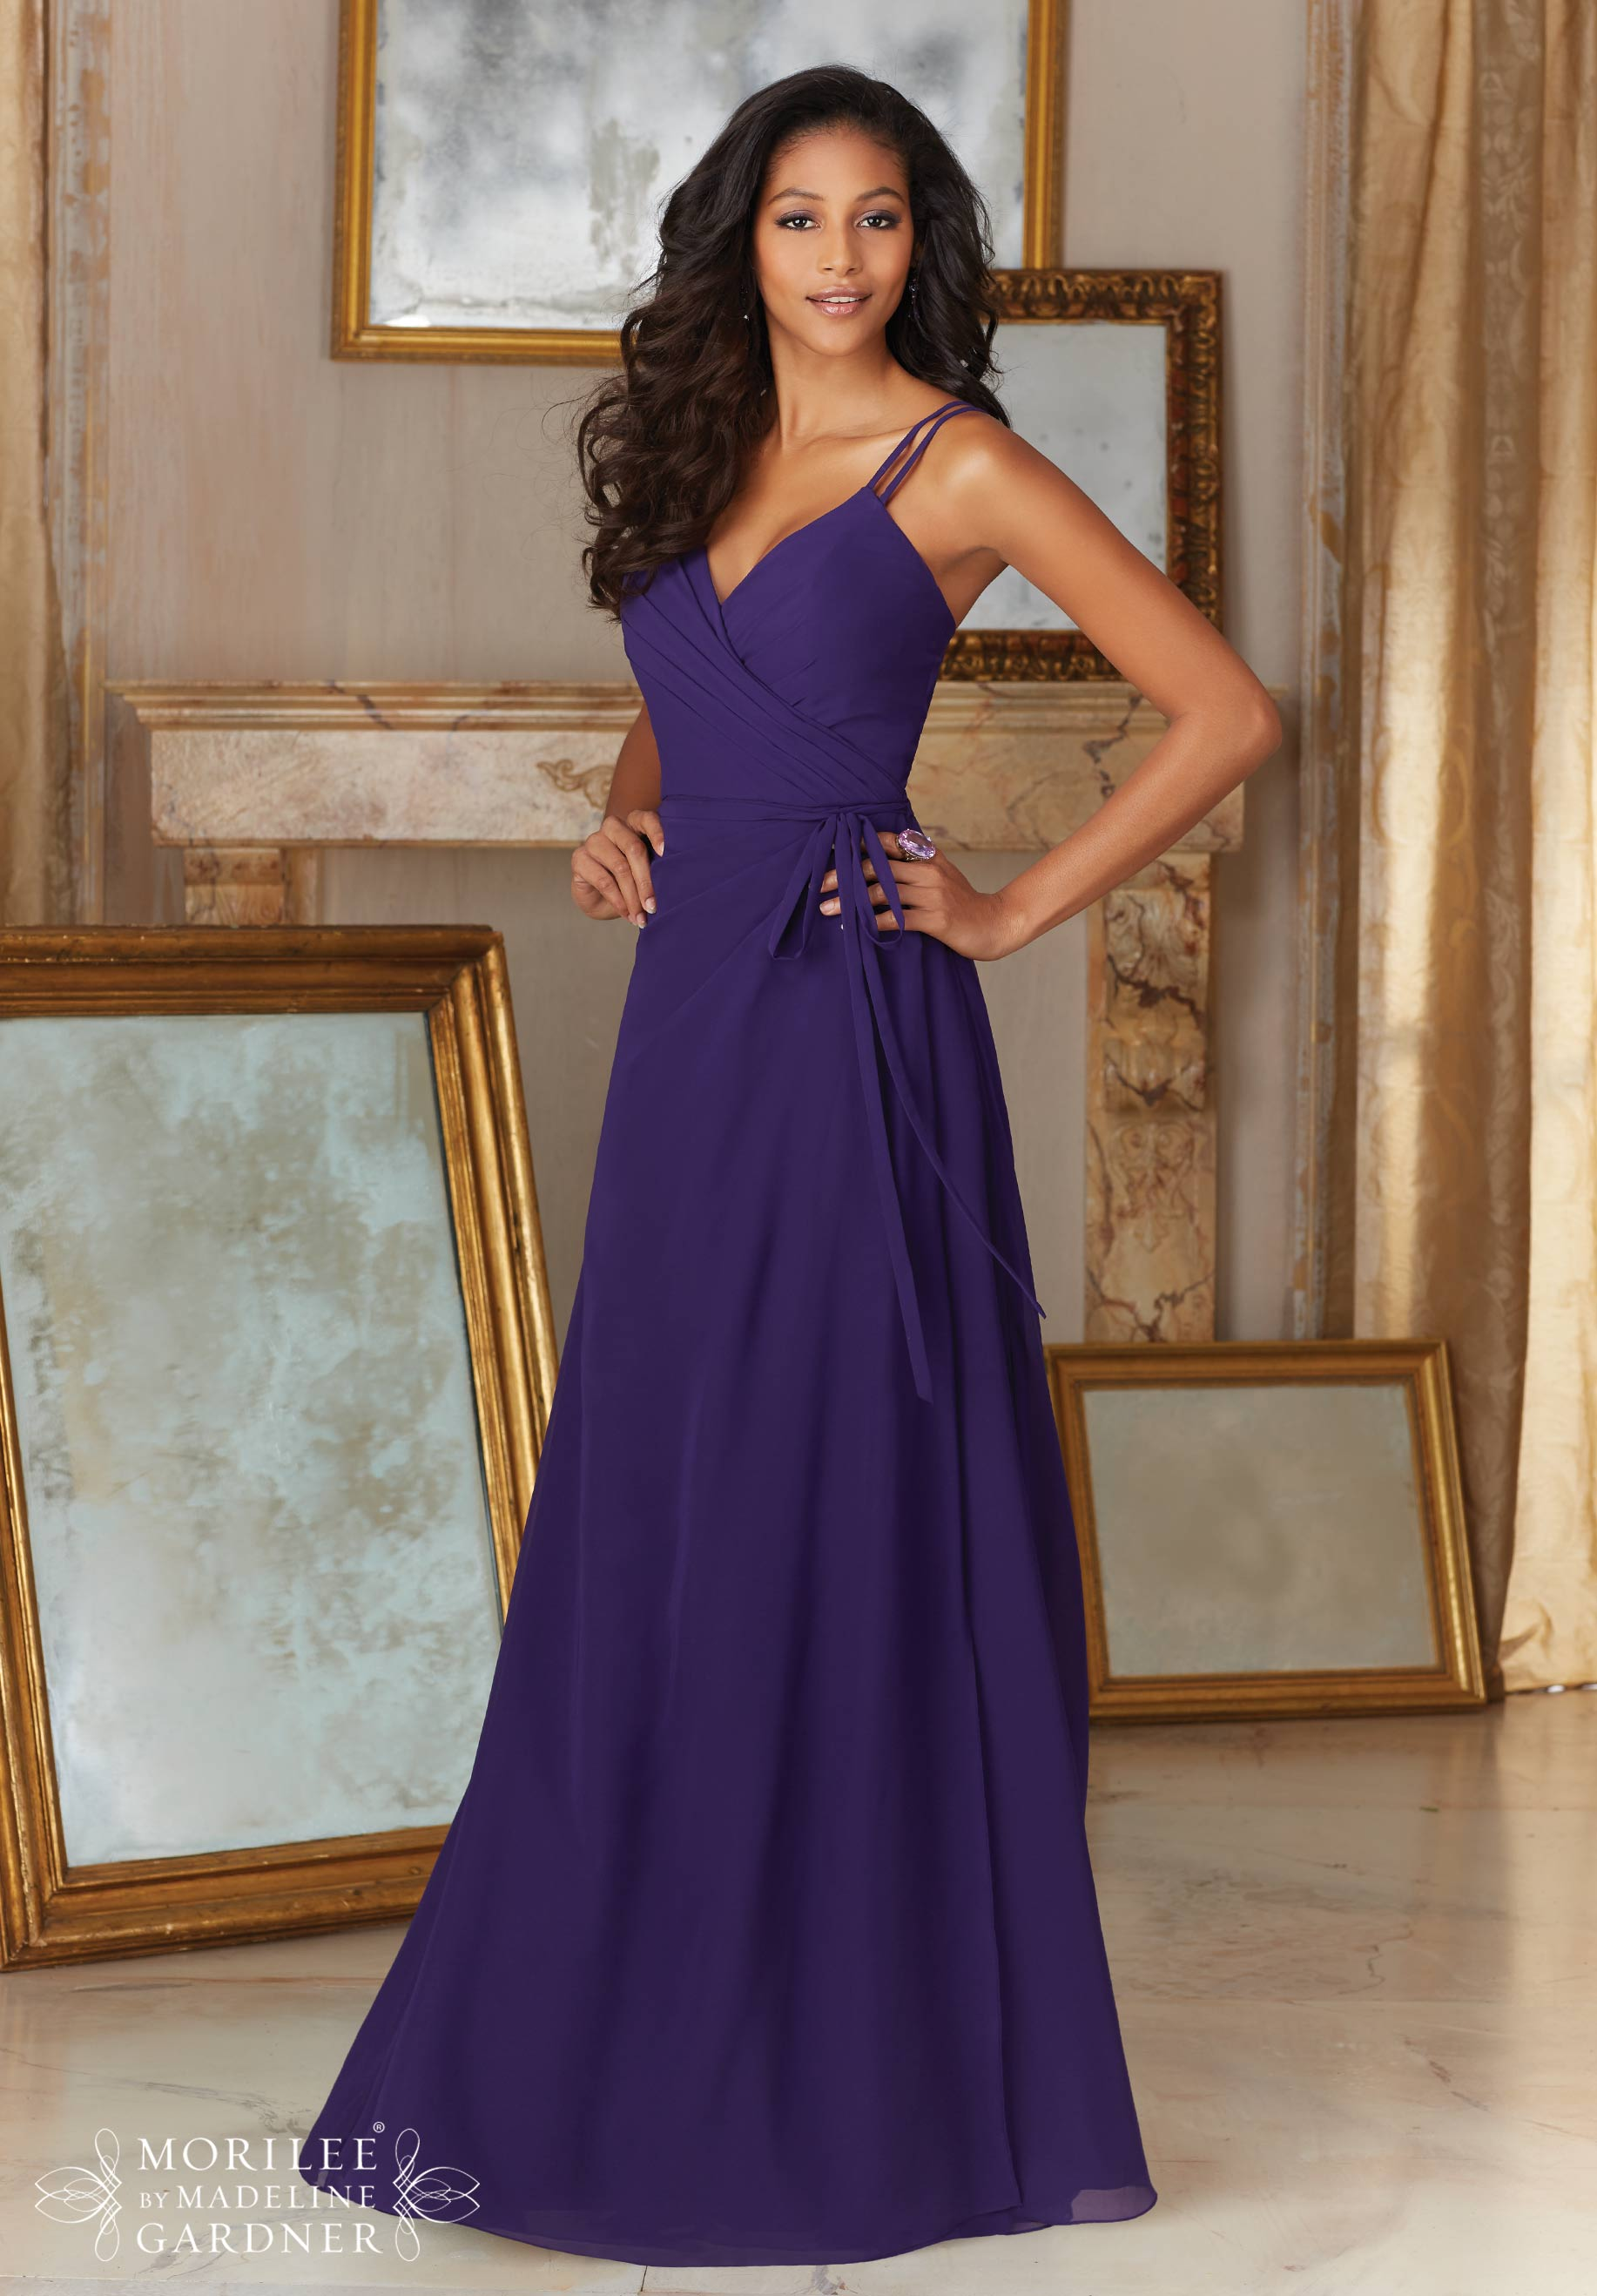 Morilee Bridesmaids Collection - Angelic Inspirations